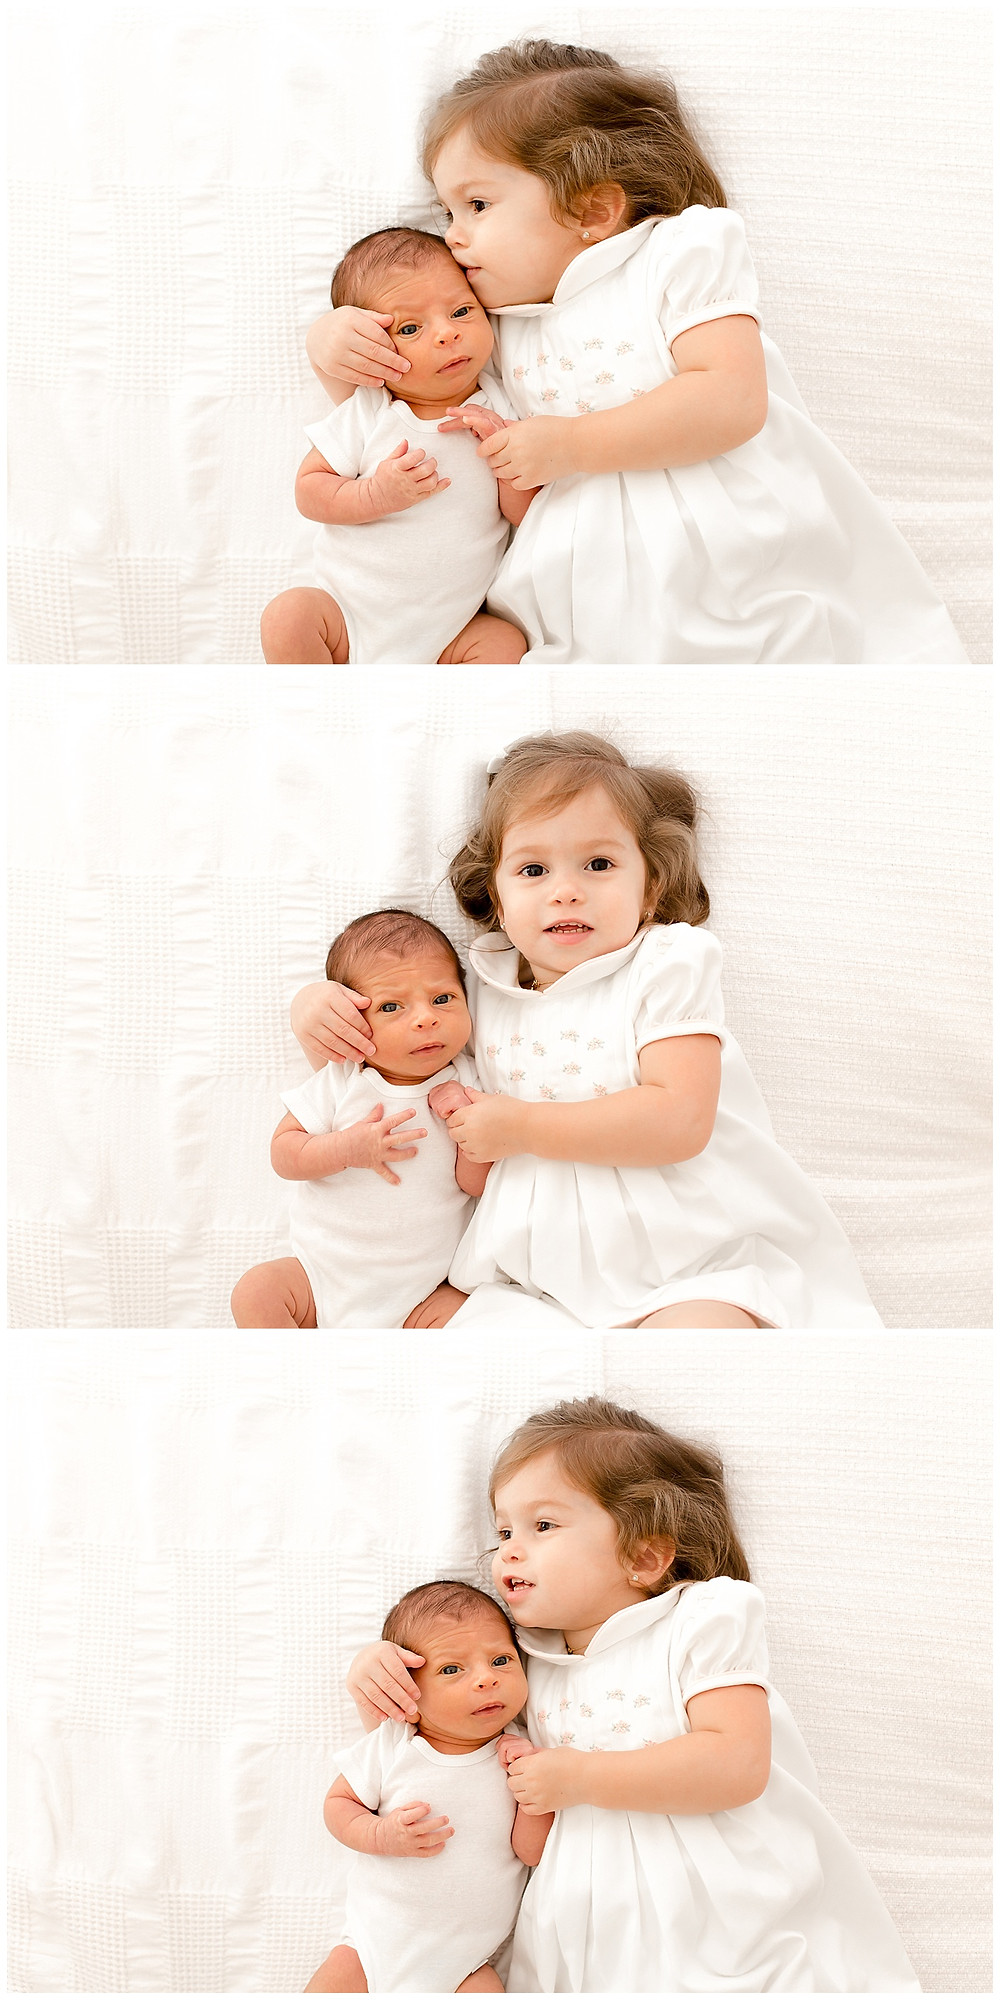 newborn with sibling images